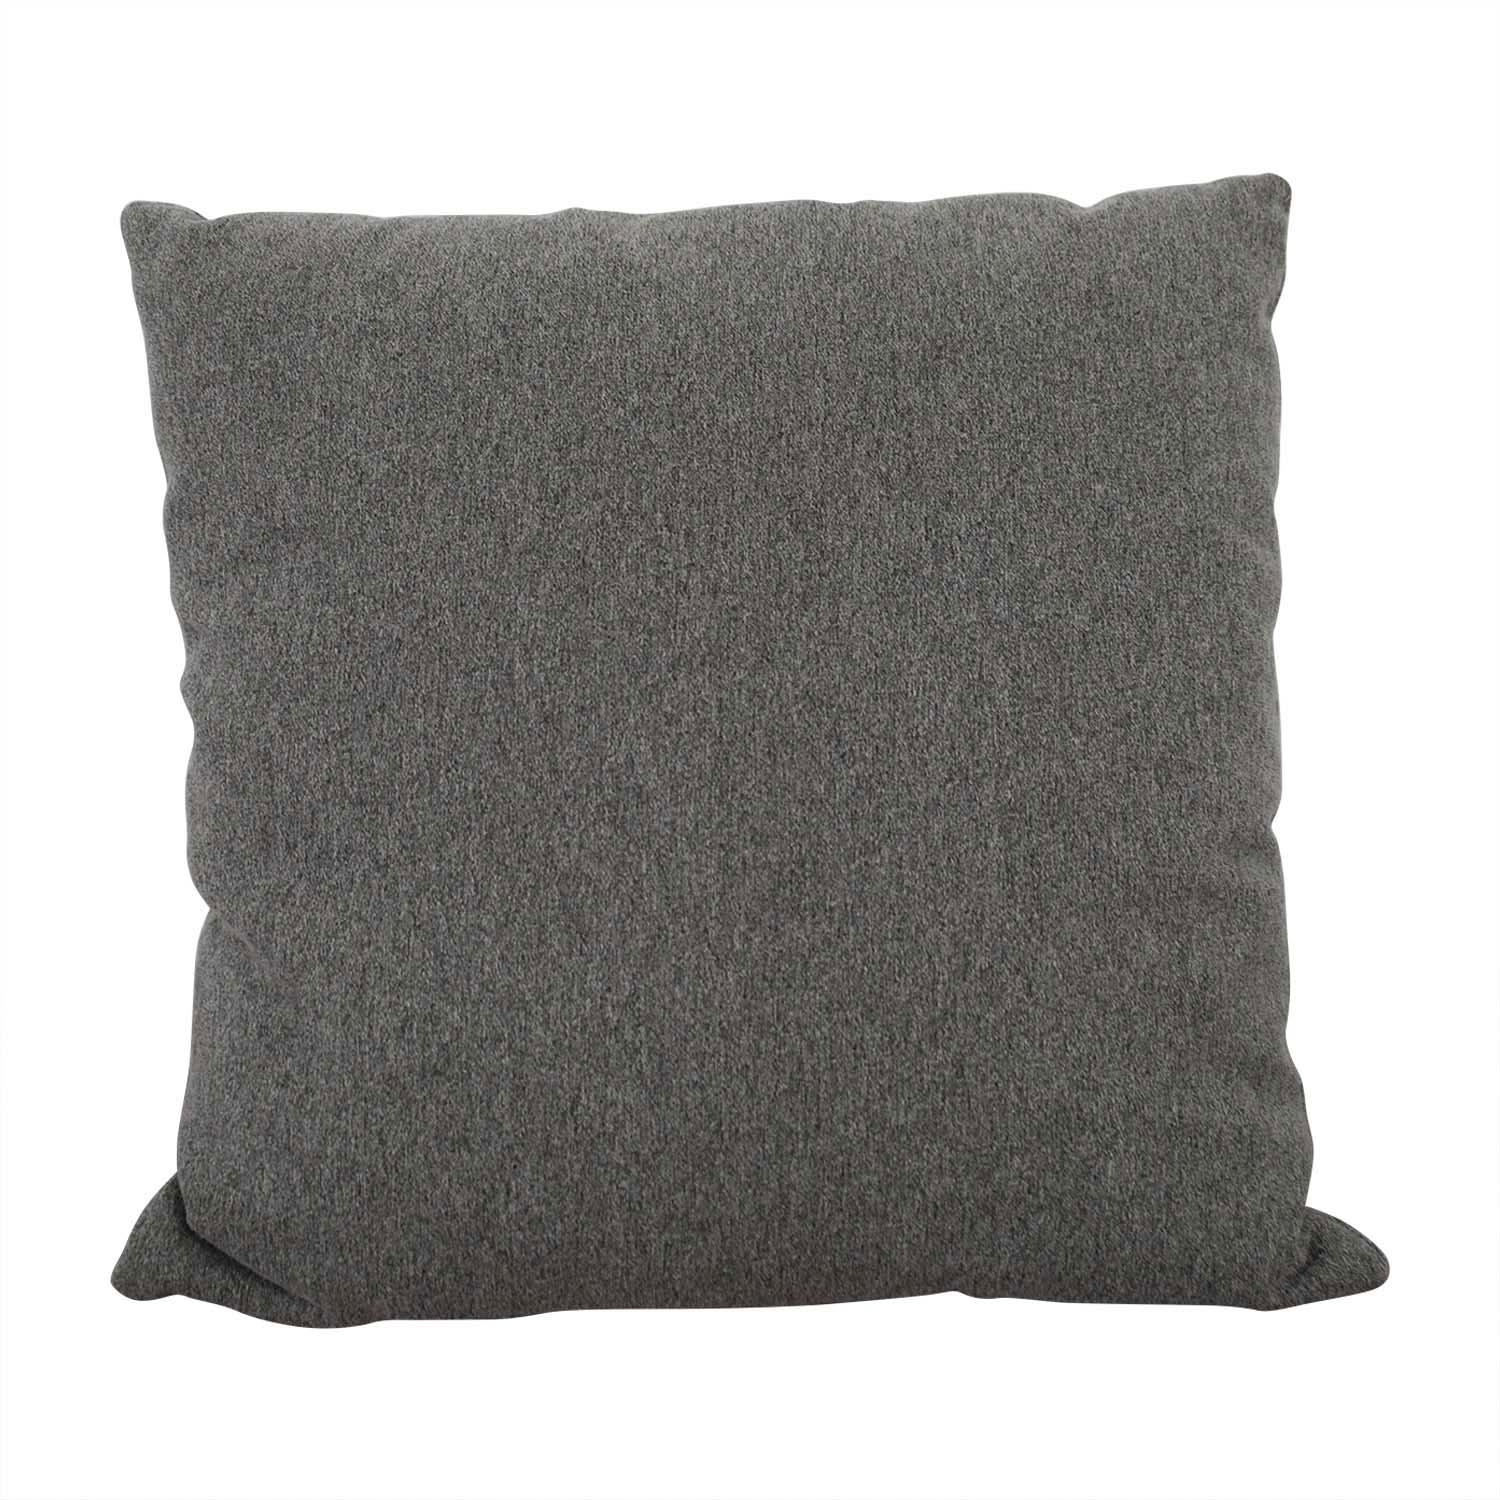 Grey Tweed Throw Pillow used